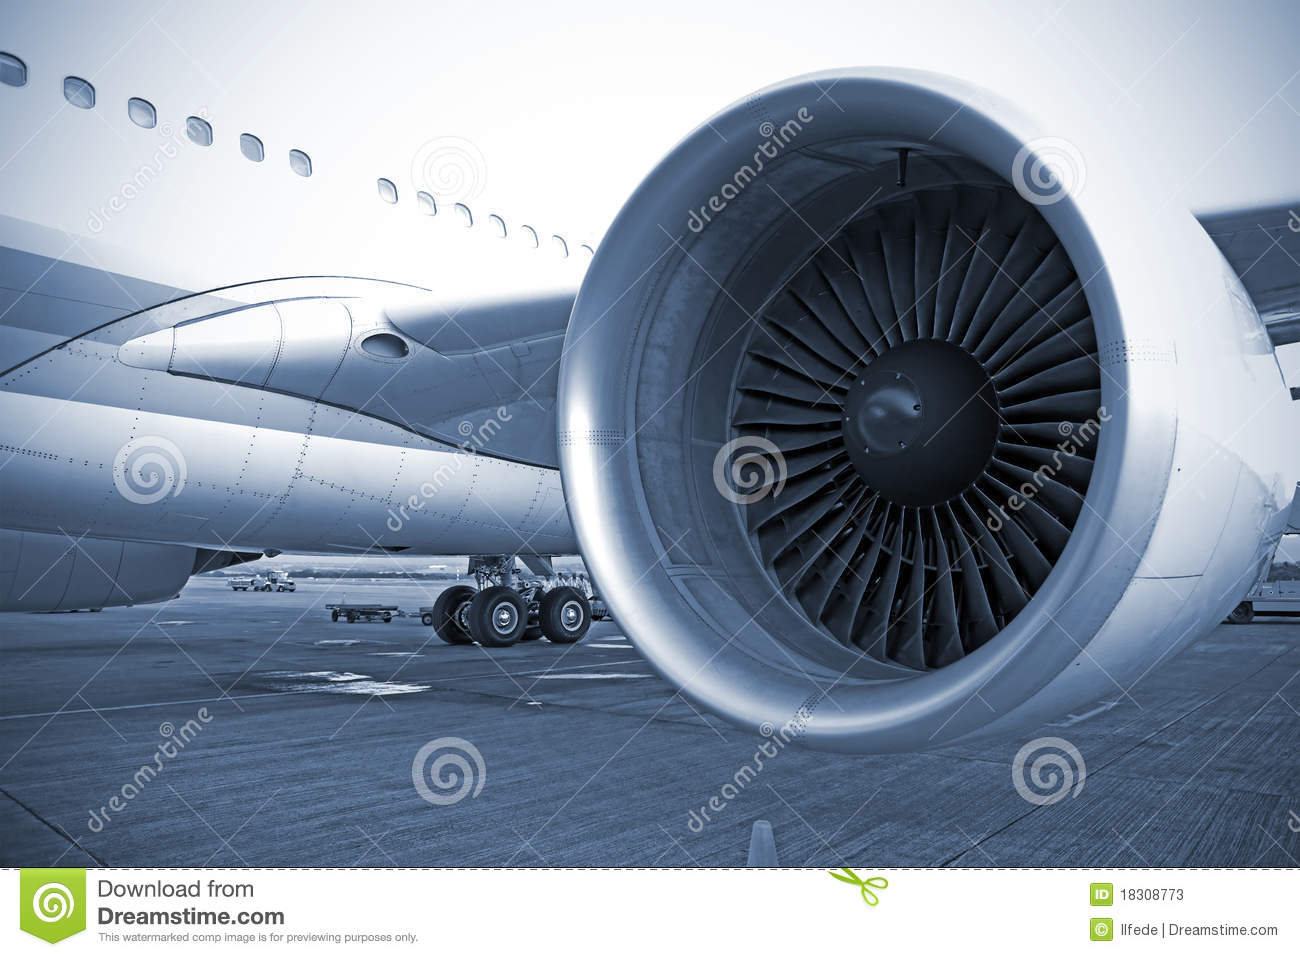 Airplane engine in airport